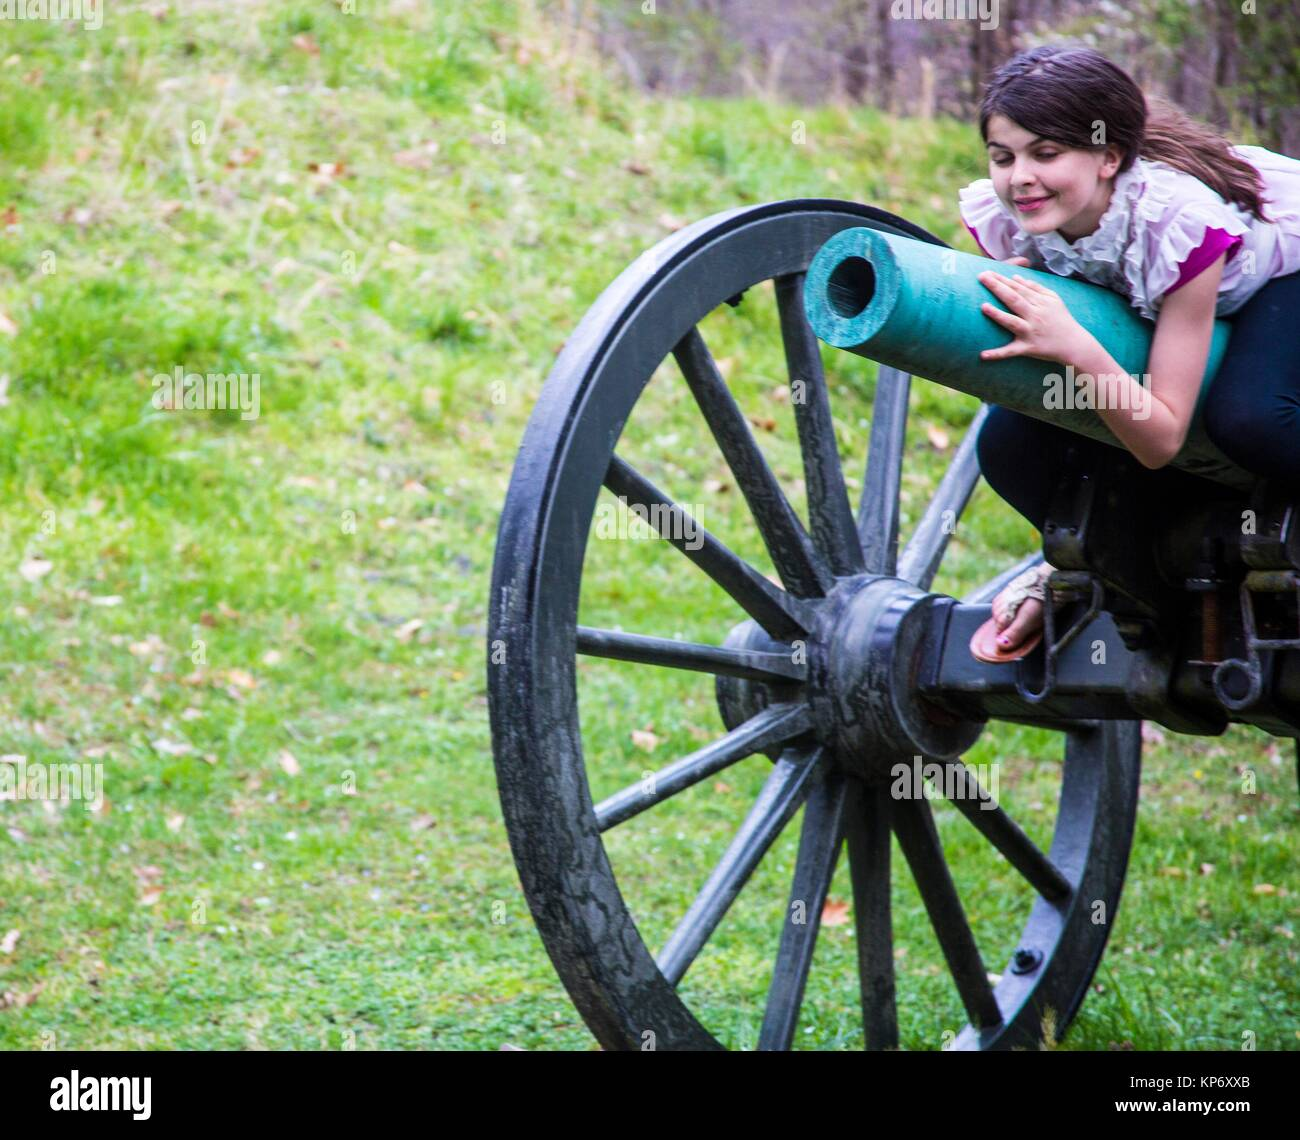 Old fashion brown wheels with green canon in the middle of an old war field with a preteen laying on it and smiling - Stock Image